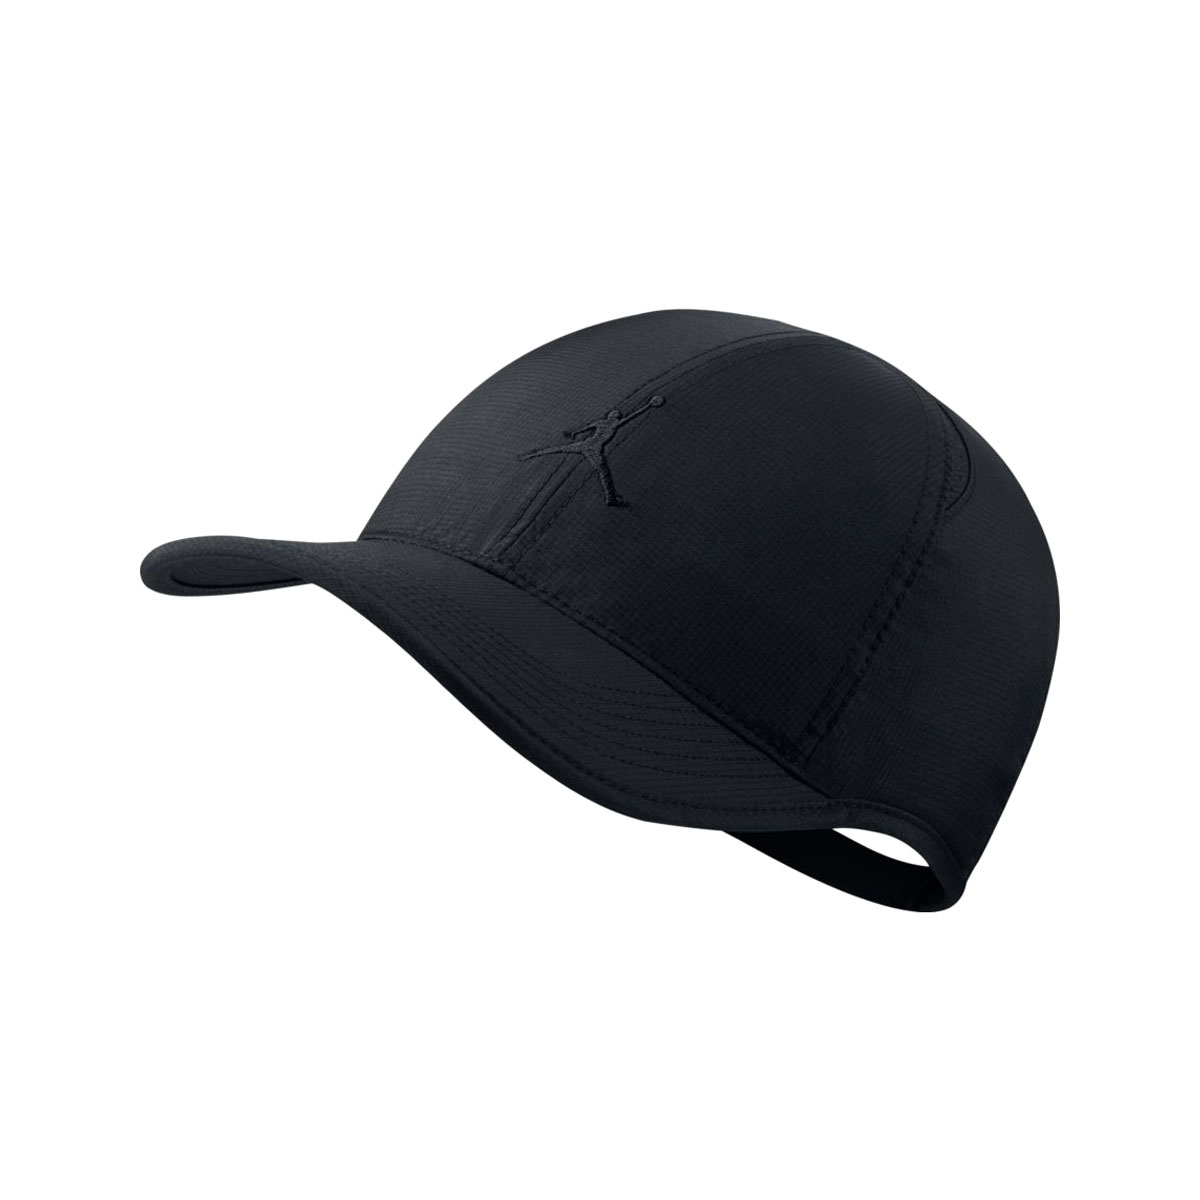 43ee33f7d107 A basic 6 panel cap of the リッップストップ material adoption. It is a jump man  logo at the front desk.